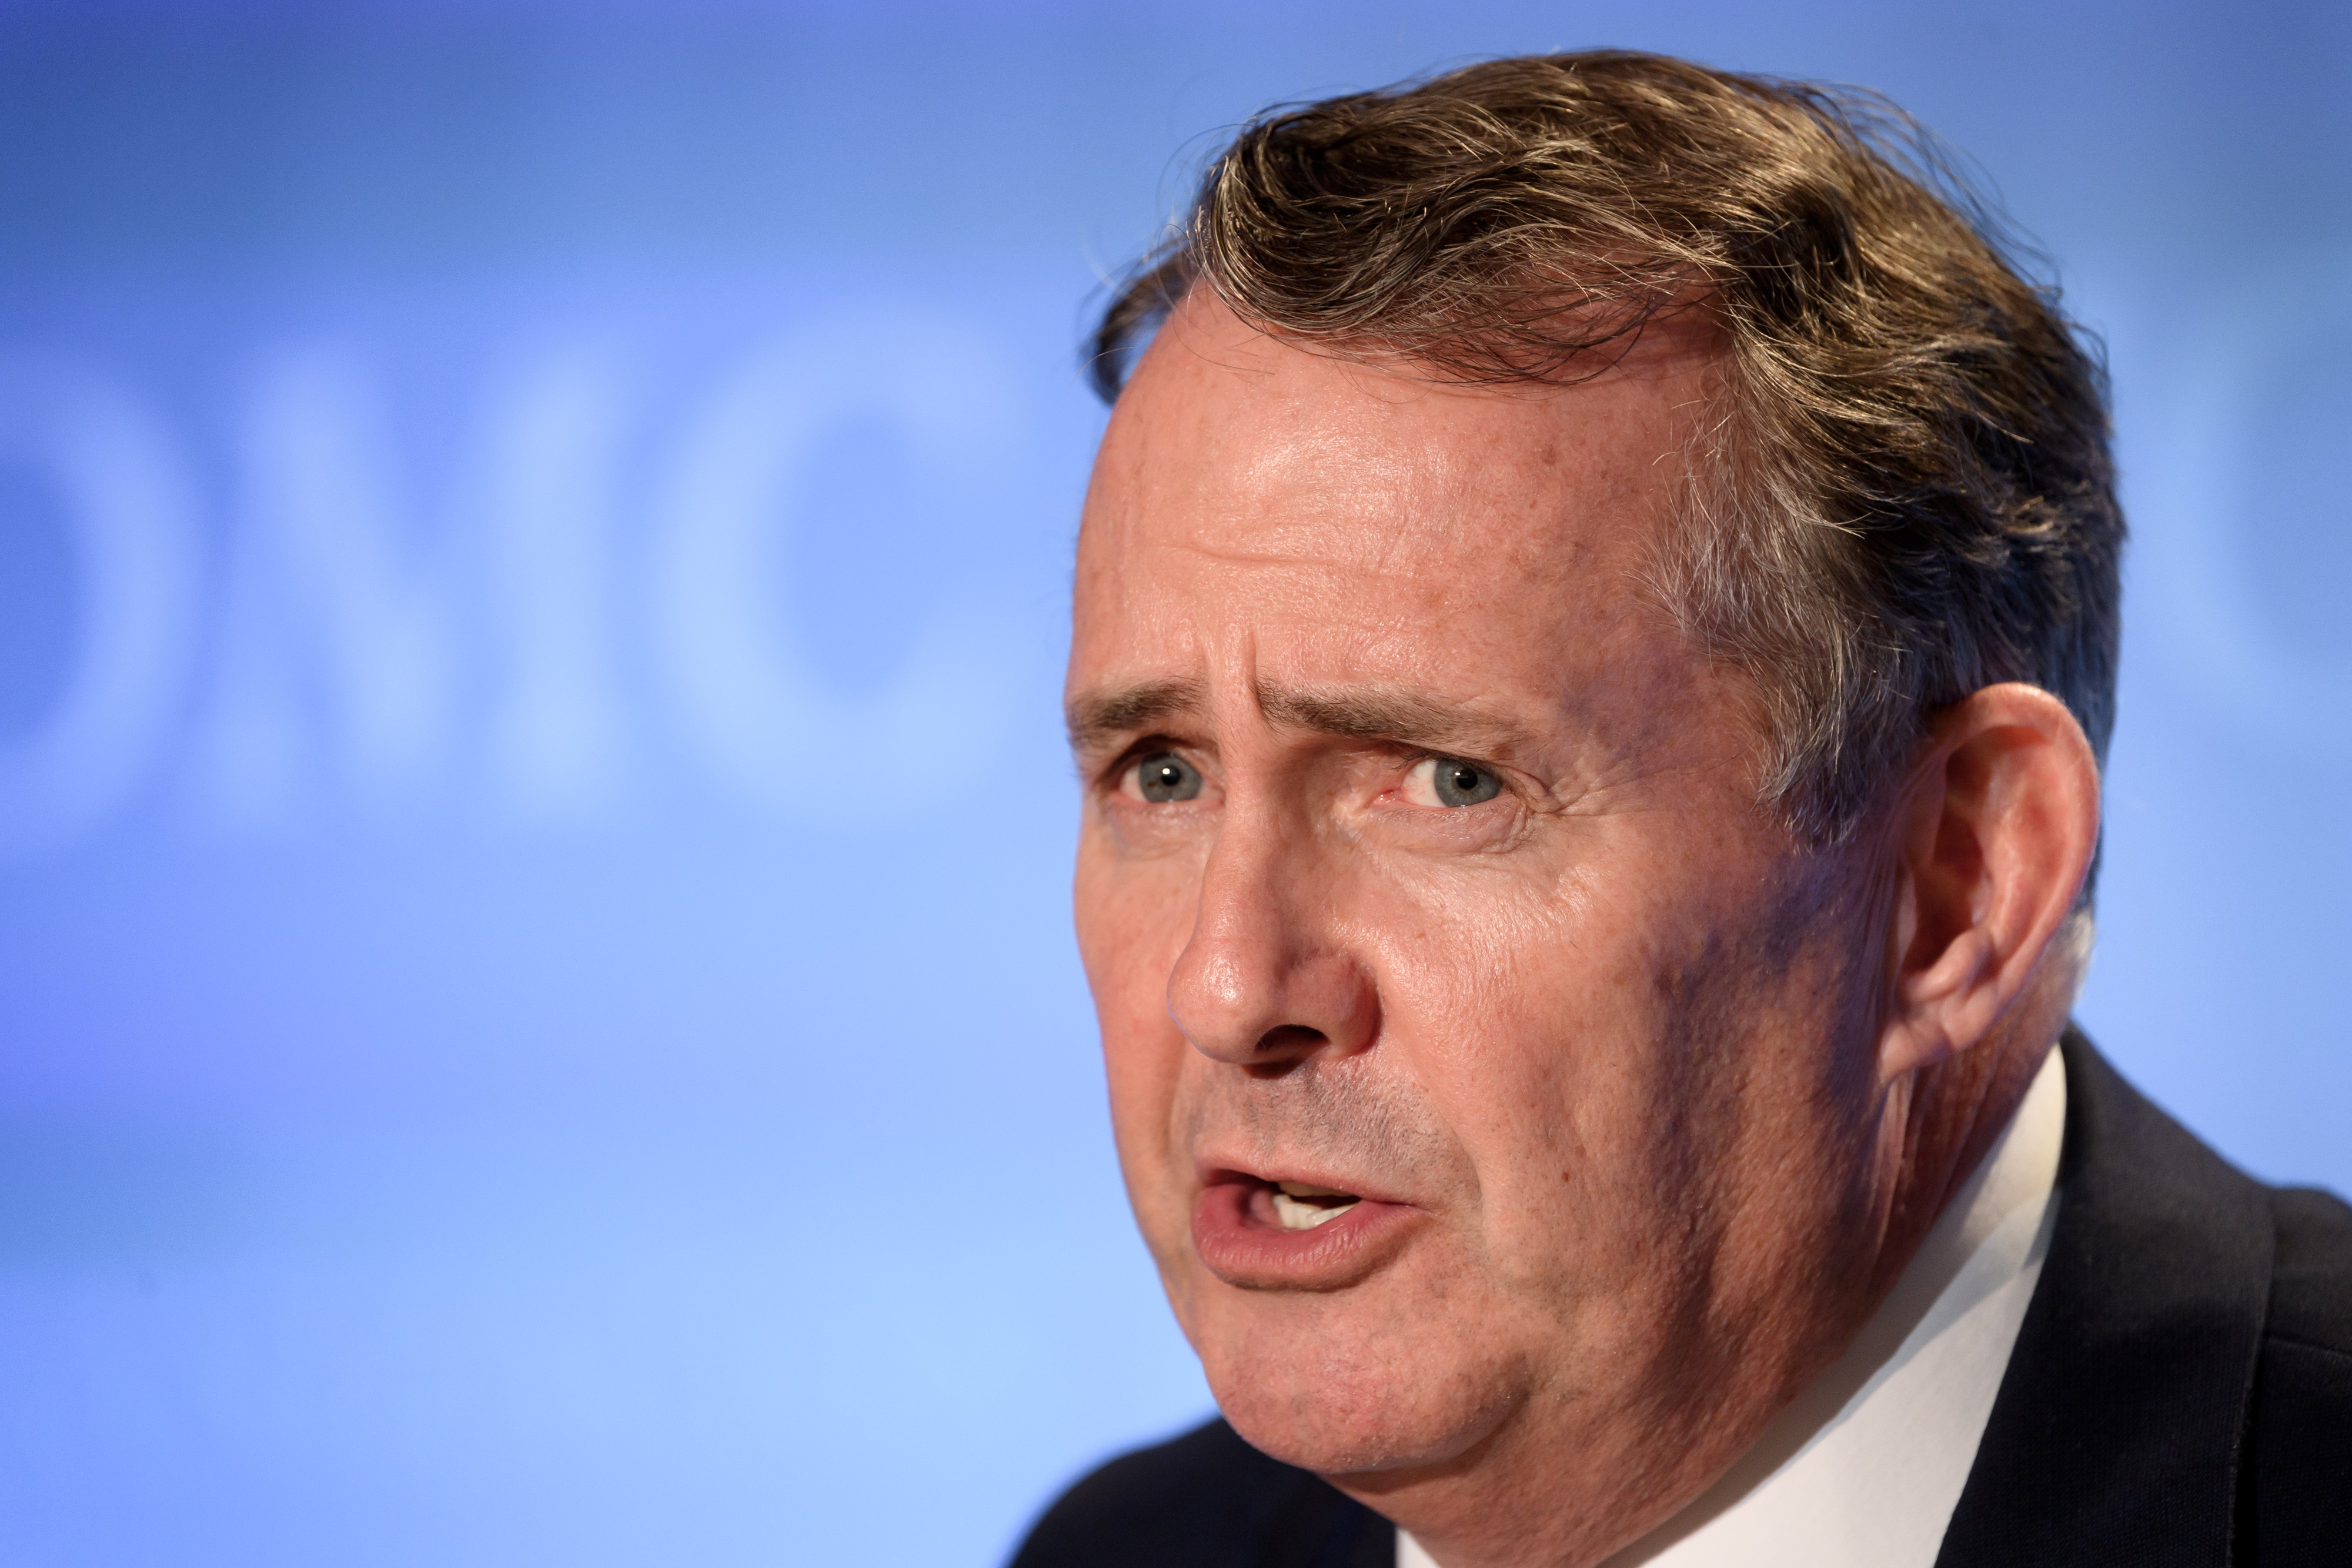 Britain's first post-Brexit international trade secretary Liam Fox gives a press conference on July 17, 2020 in Geneva following his hearing before 164 member states' representatives, as part of the application process to head the World Trade Organization (WTO) as Director General. - The eight candidates battling to become the next head of the beleaguered World Trade Organization make their pitches this week, with three days of auditions started on July 15, 2020. (Photo by Fabrice COFFRINI / AFP) (Photo by FABRICE COFFRINI/AFP via Getty Images)